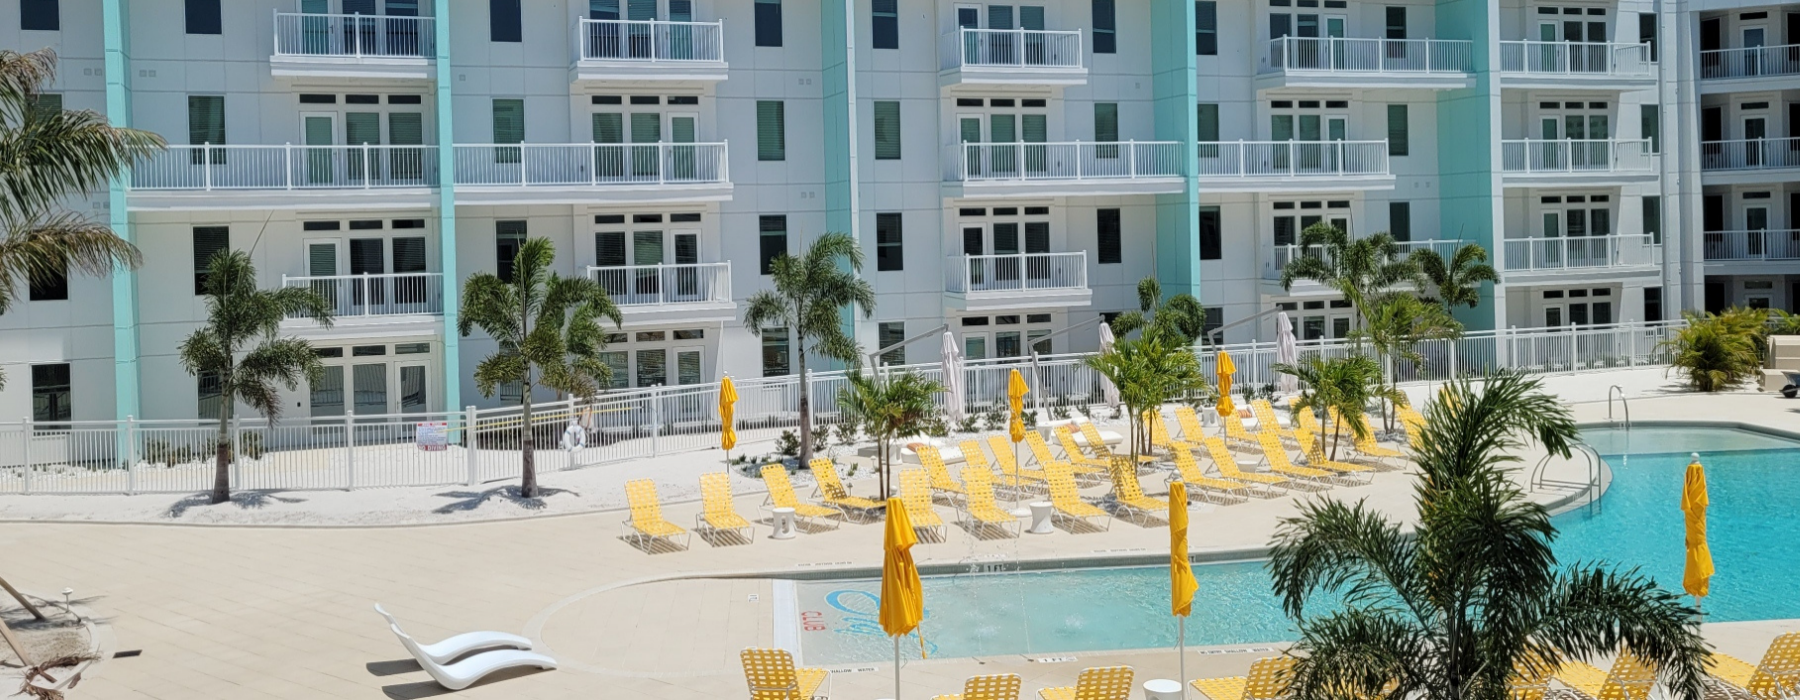 exterior of apartment building with pool deck and pool furniture